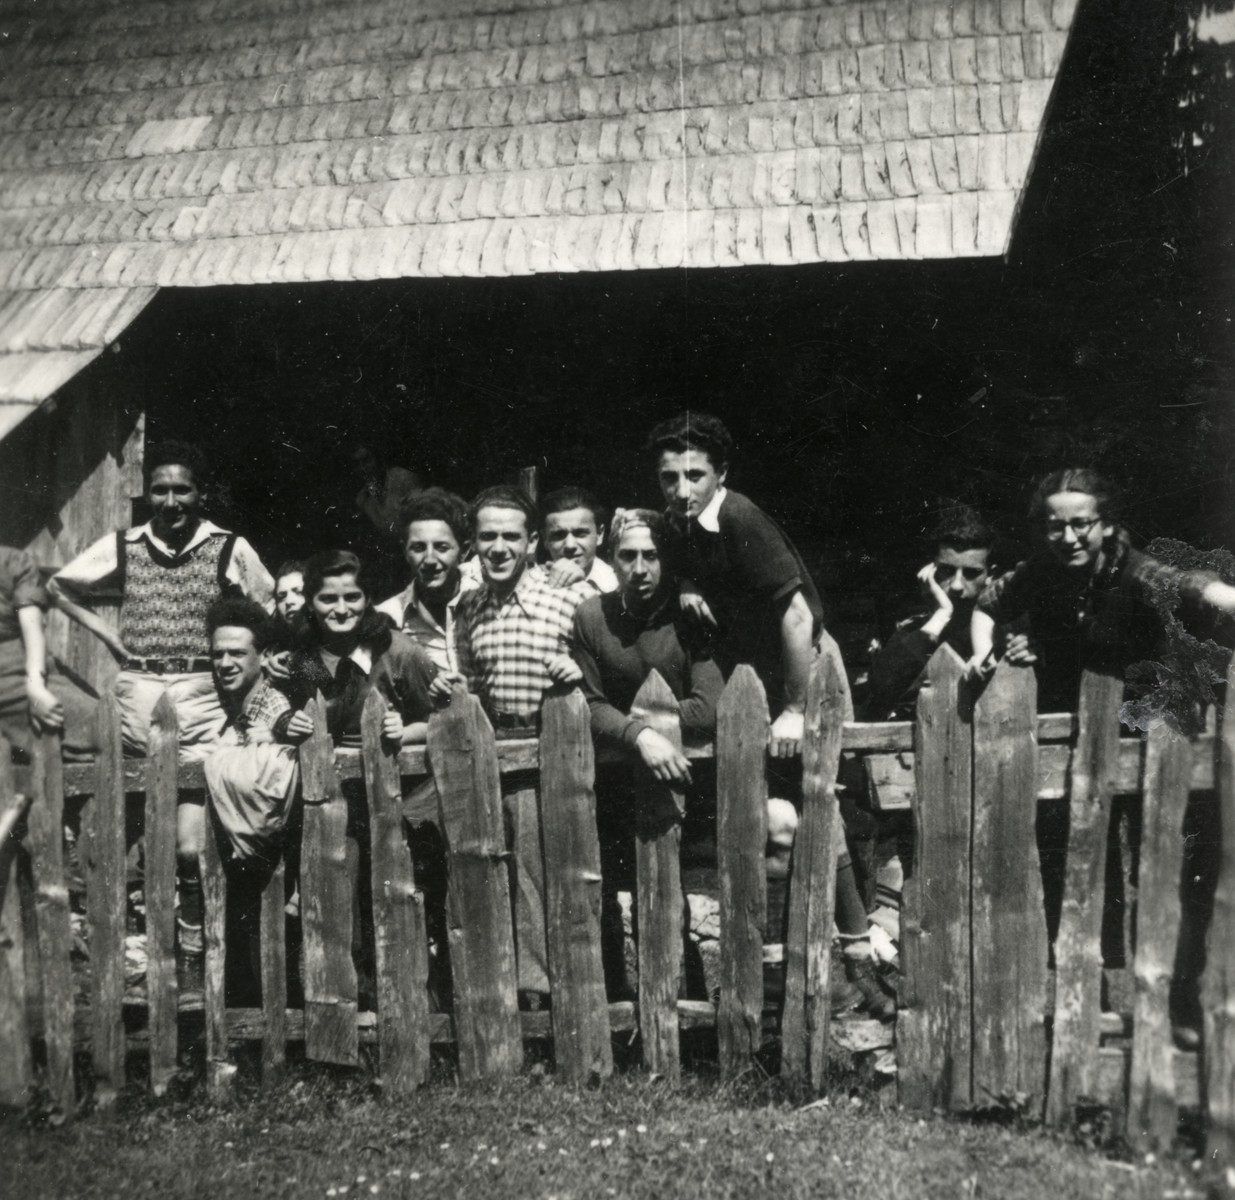 Members of the Zionist youth movement Hashomer Htatzair.pose next to a fence in Yugoslavia.    Donna Papo is pictured on the far right.